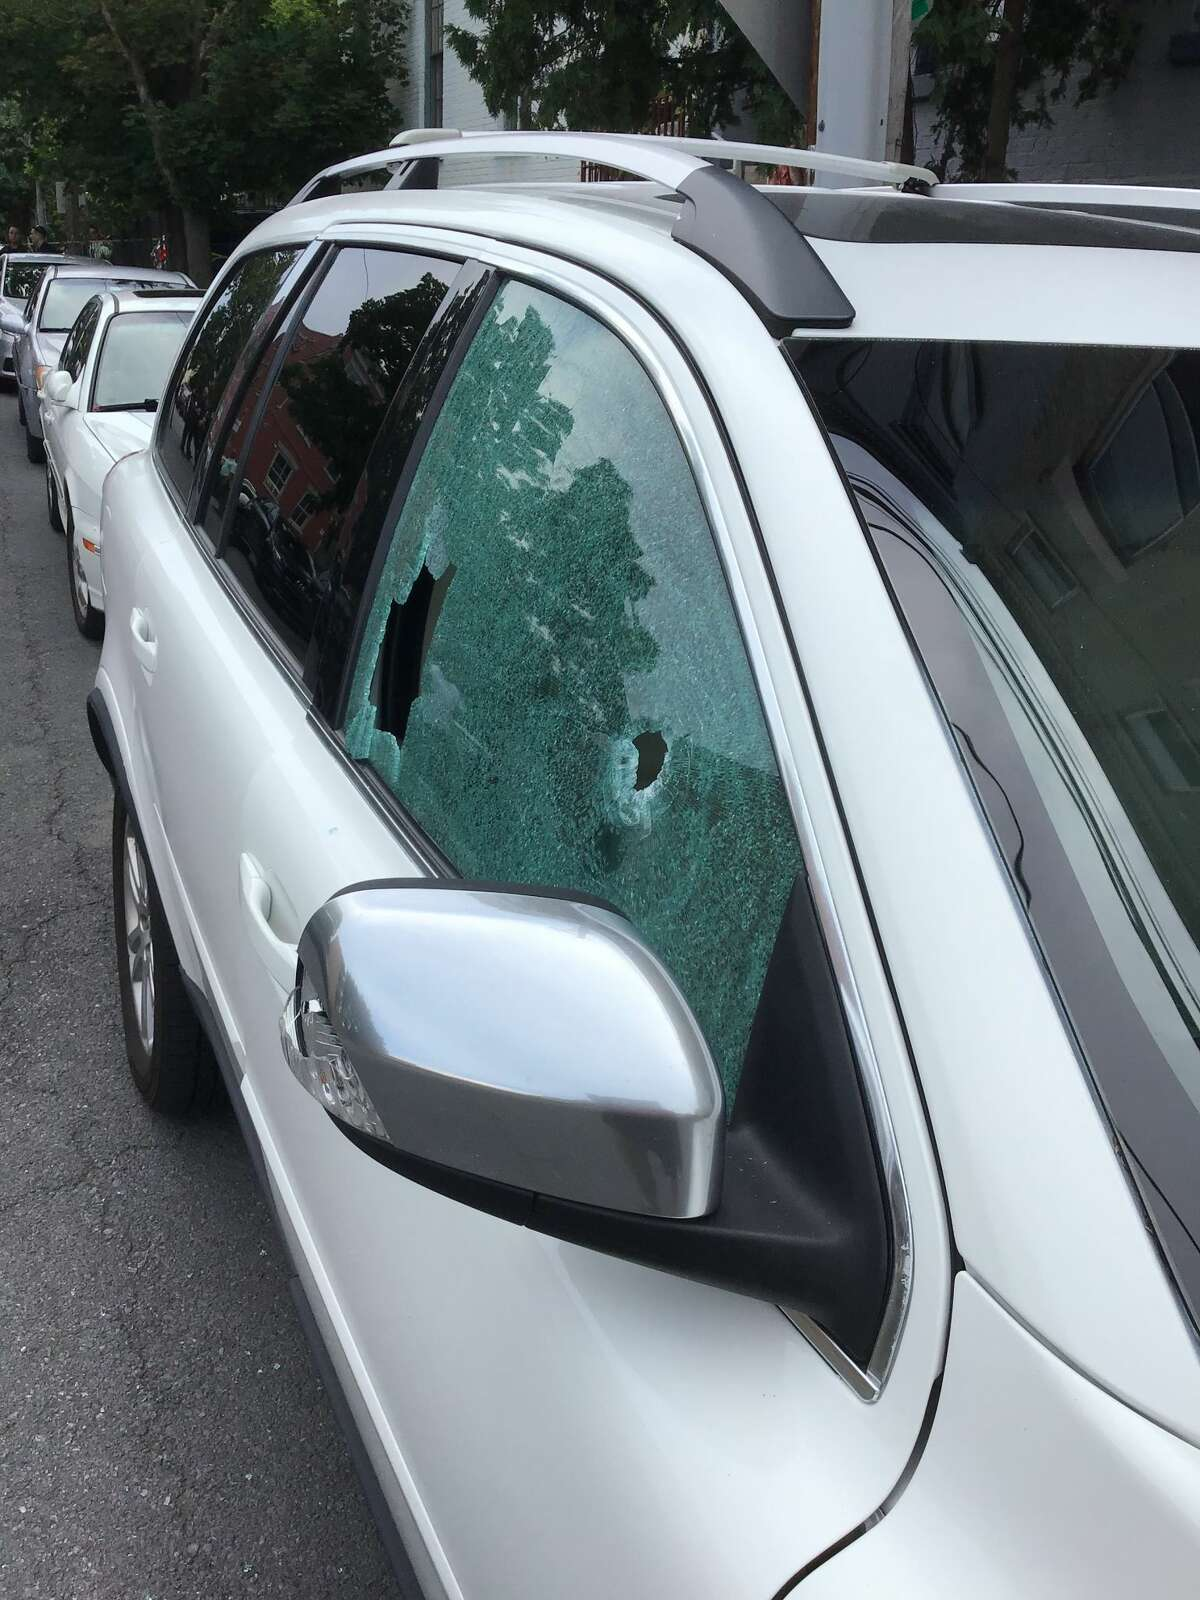 The window of a vehicle where shattered by gunshots Saturday, July 11, 2020 on Trinity Place in Albany. (Provided photo)